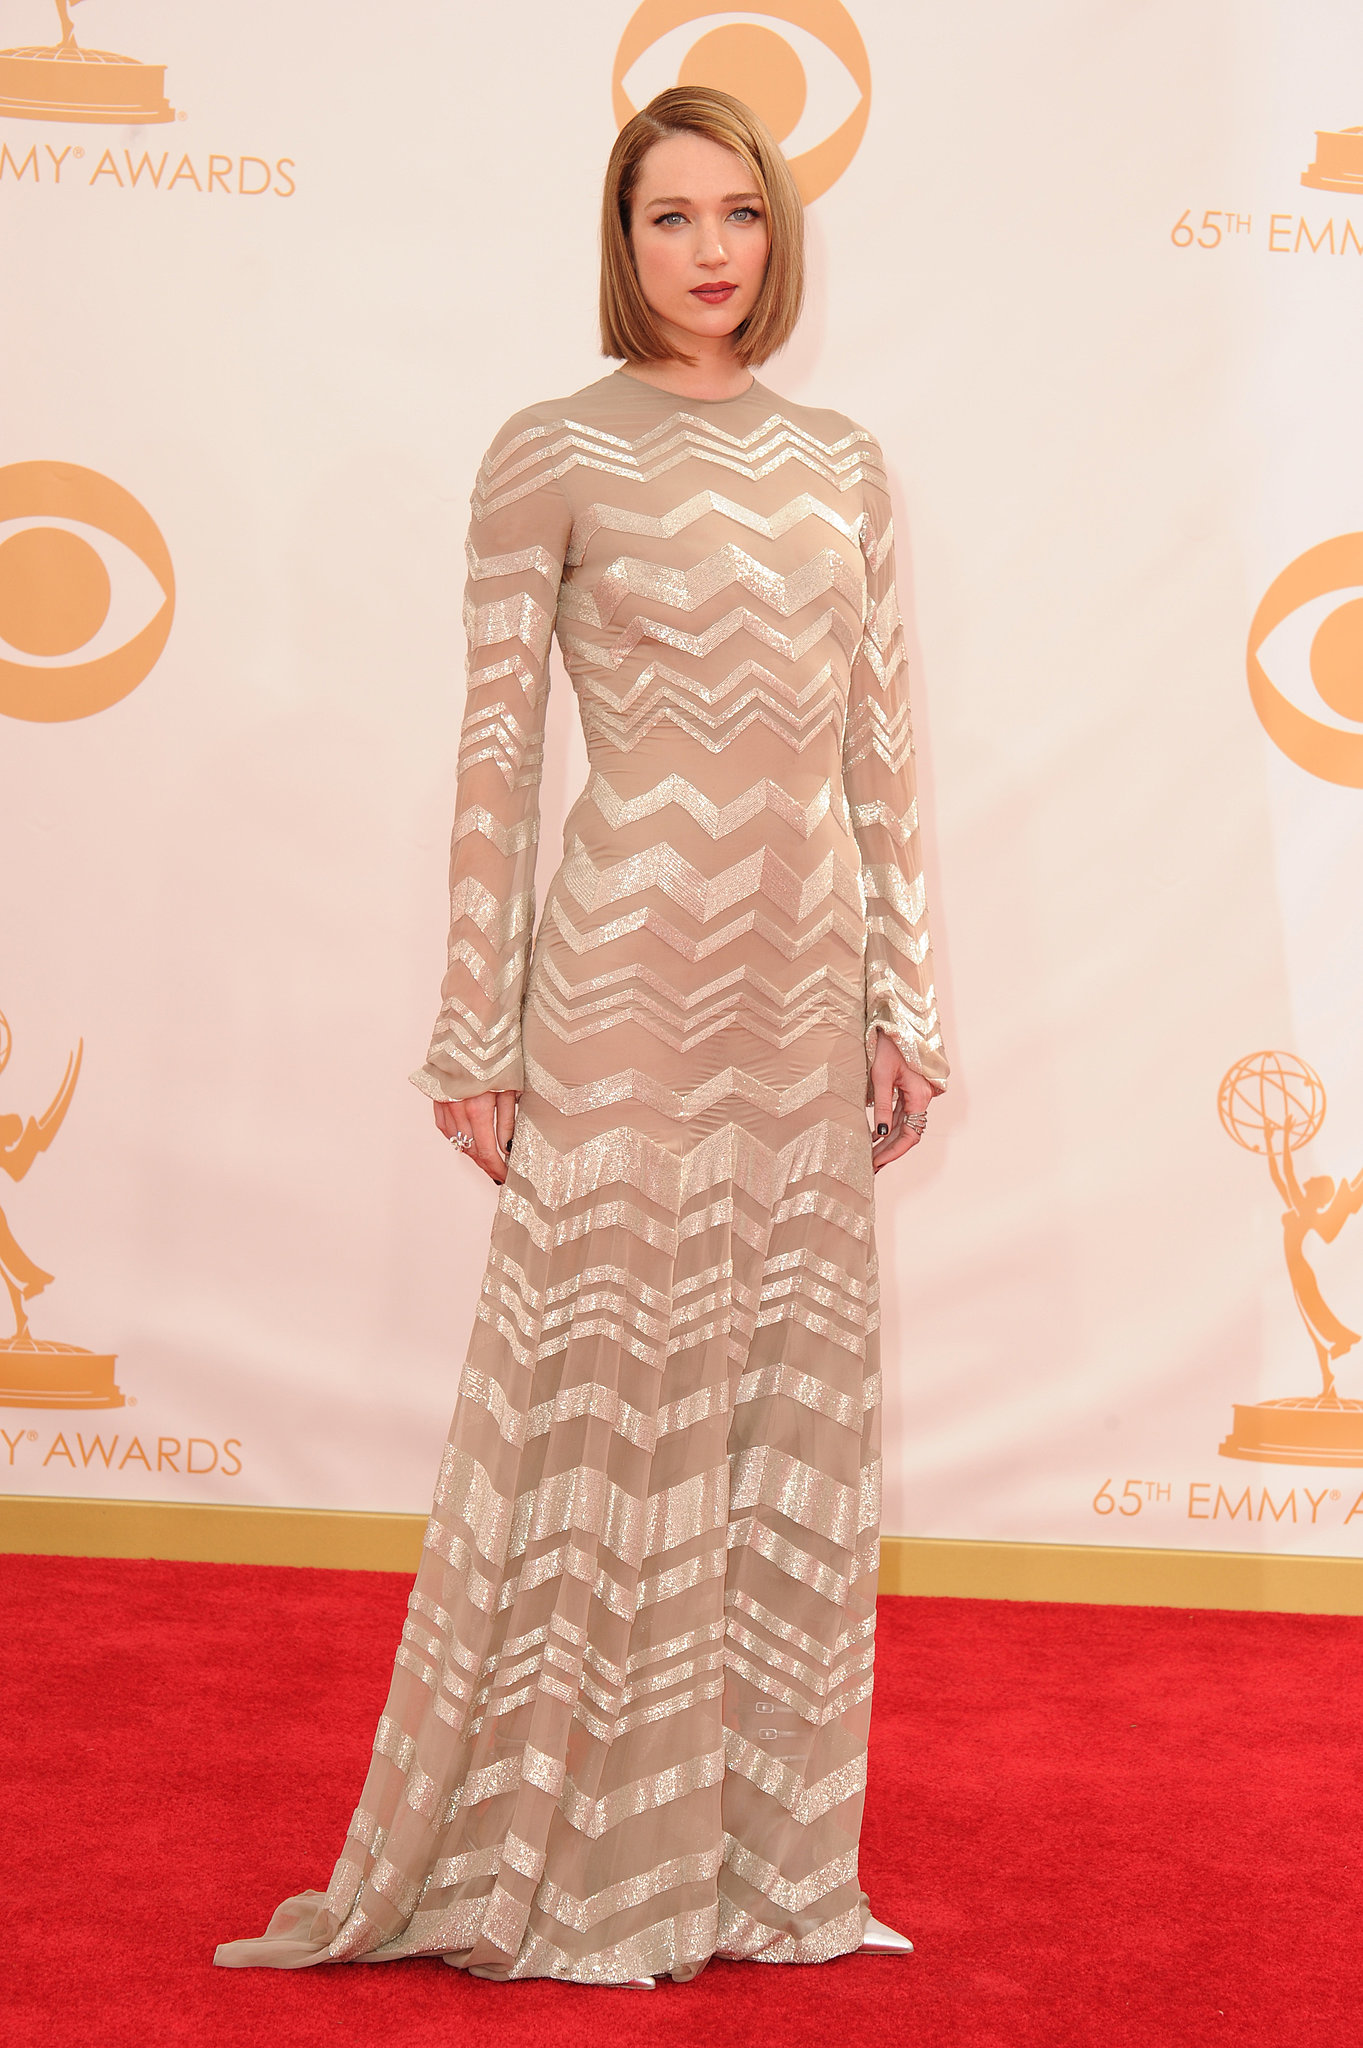 Actress Kristen Connolly donned a glamorous gown at the Emmys.